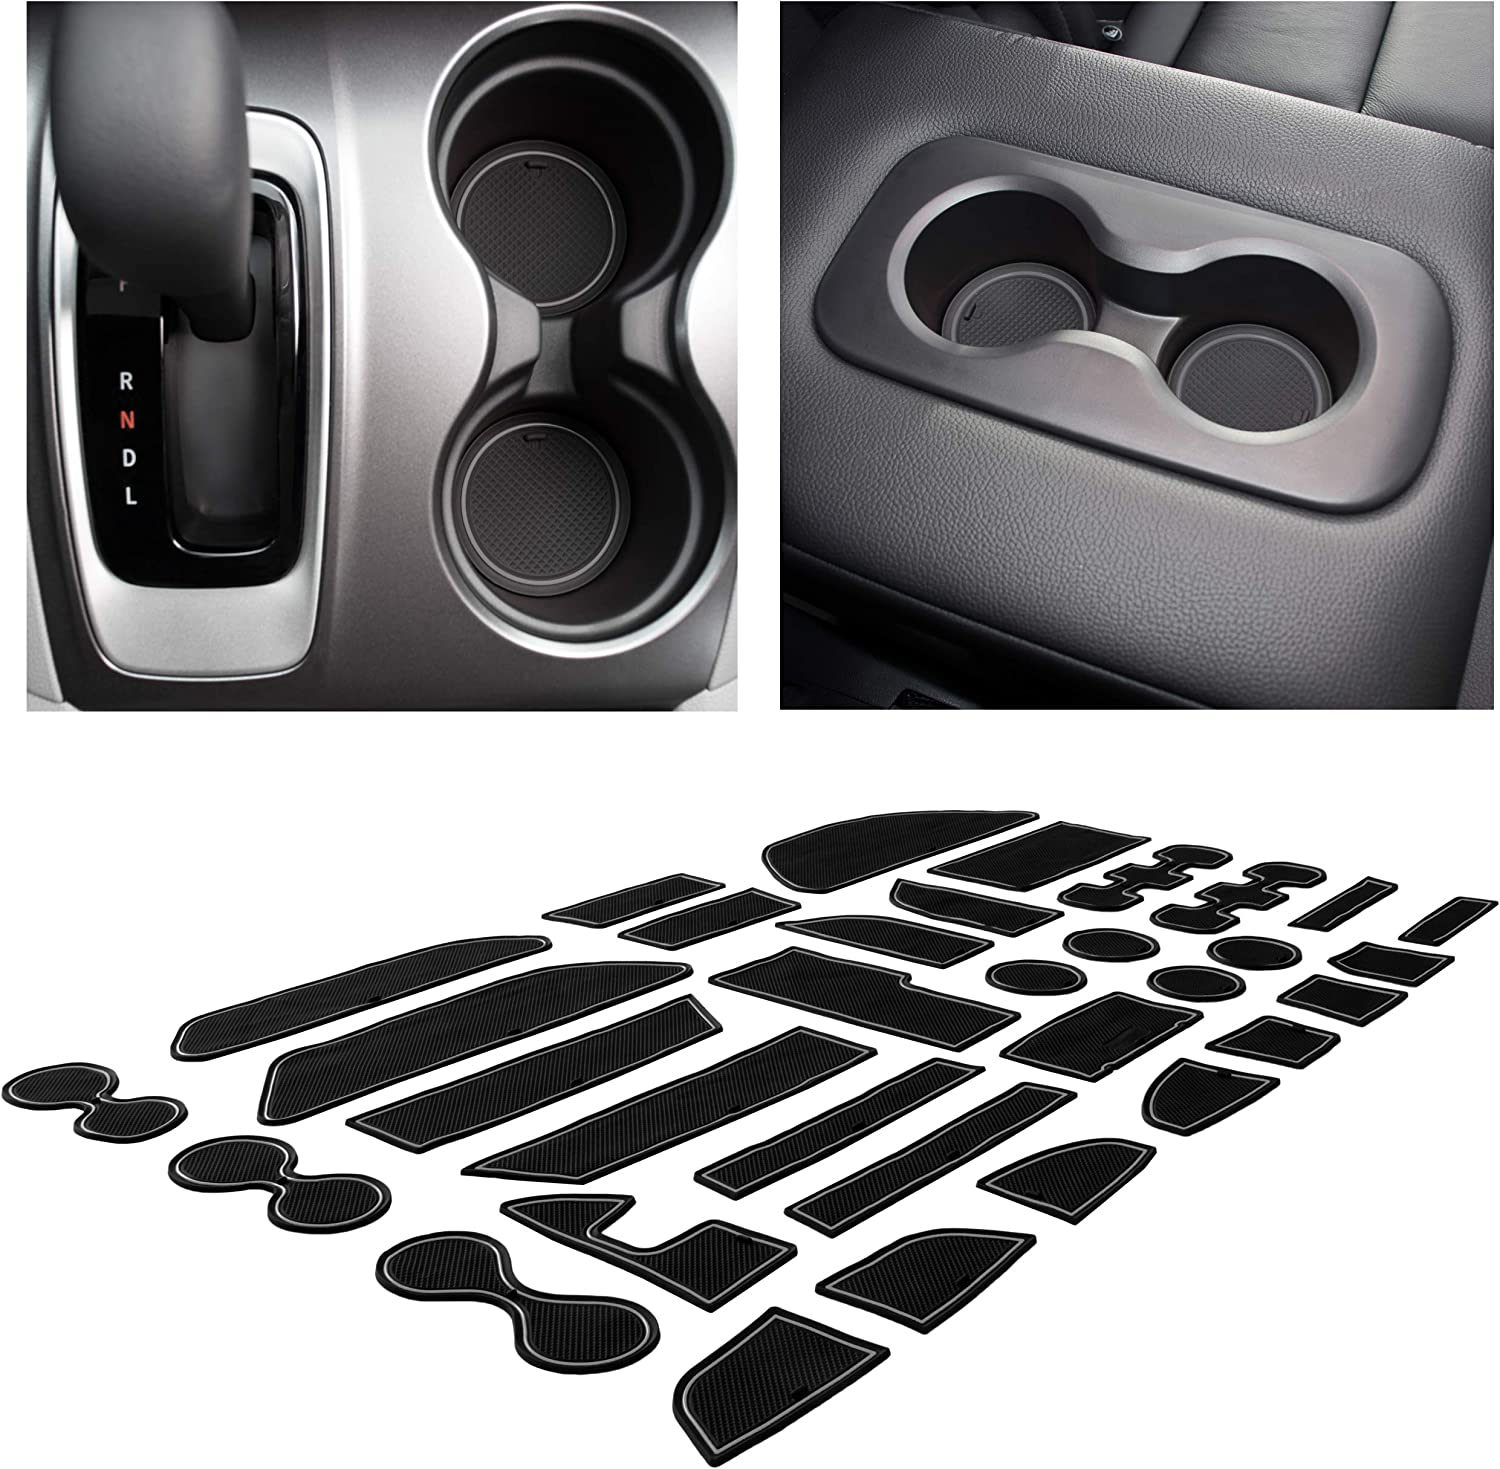 Door Pocket Liners 16-pc Set CupHolderHero Compatible with Toyota Prius Accessories 2016-2018 Premium Custom Interior Non-Slip Anti Dust Cup Holder Inserts Solid Black Center Console Liner Mats